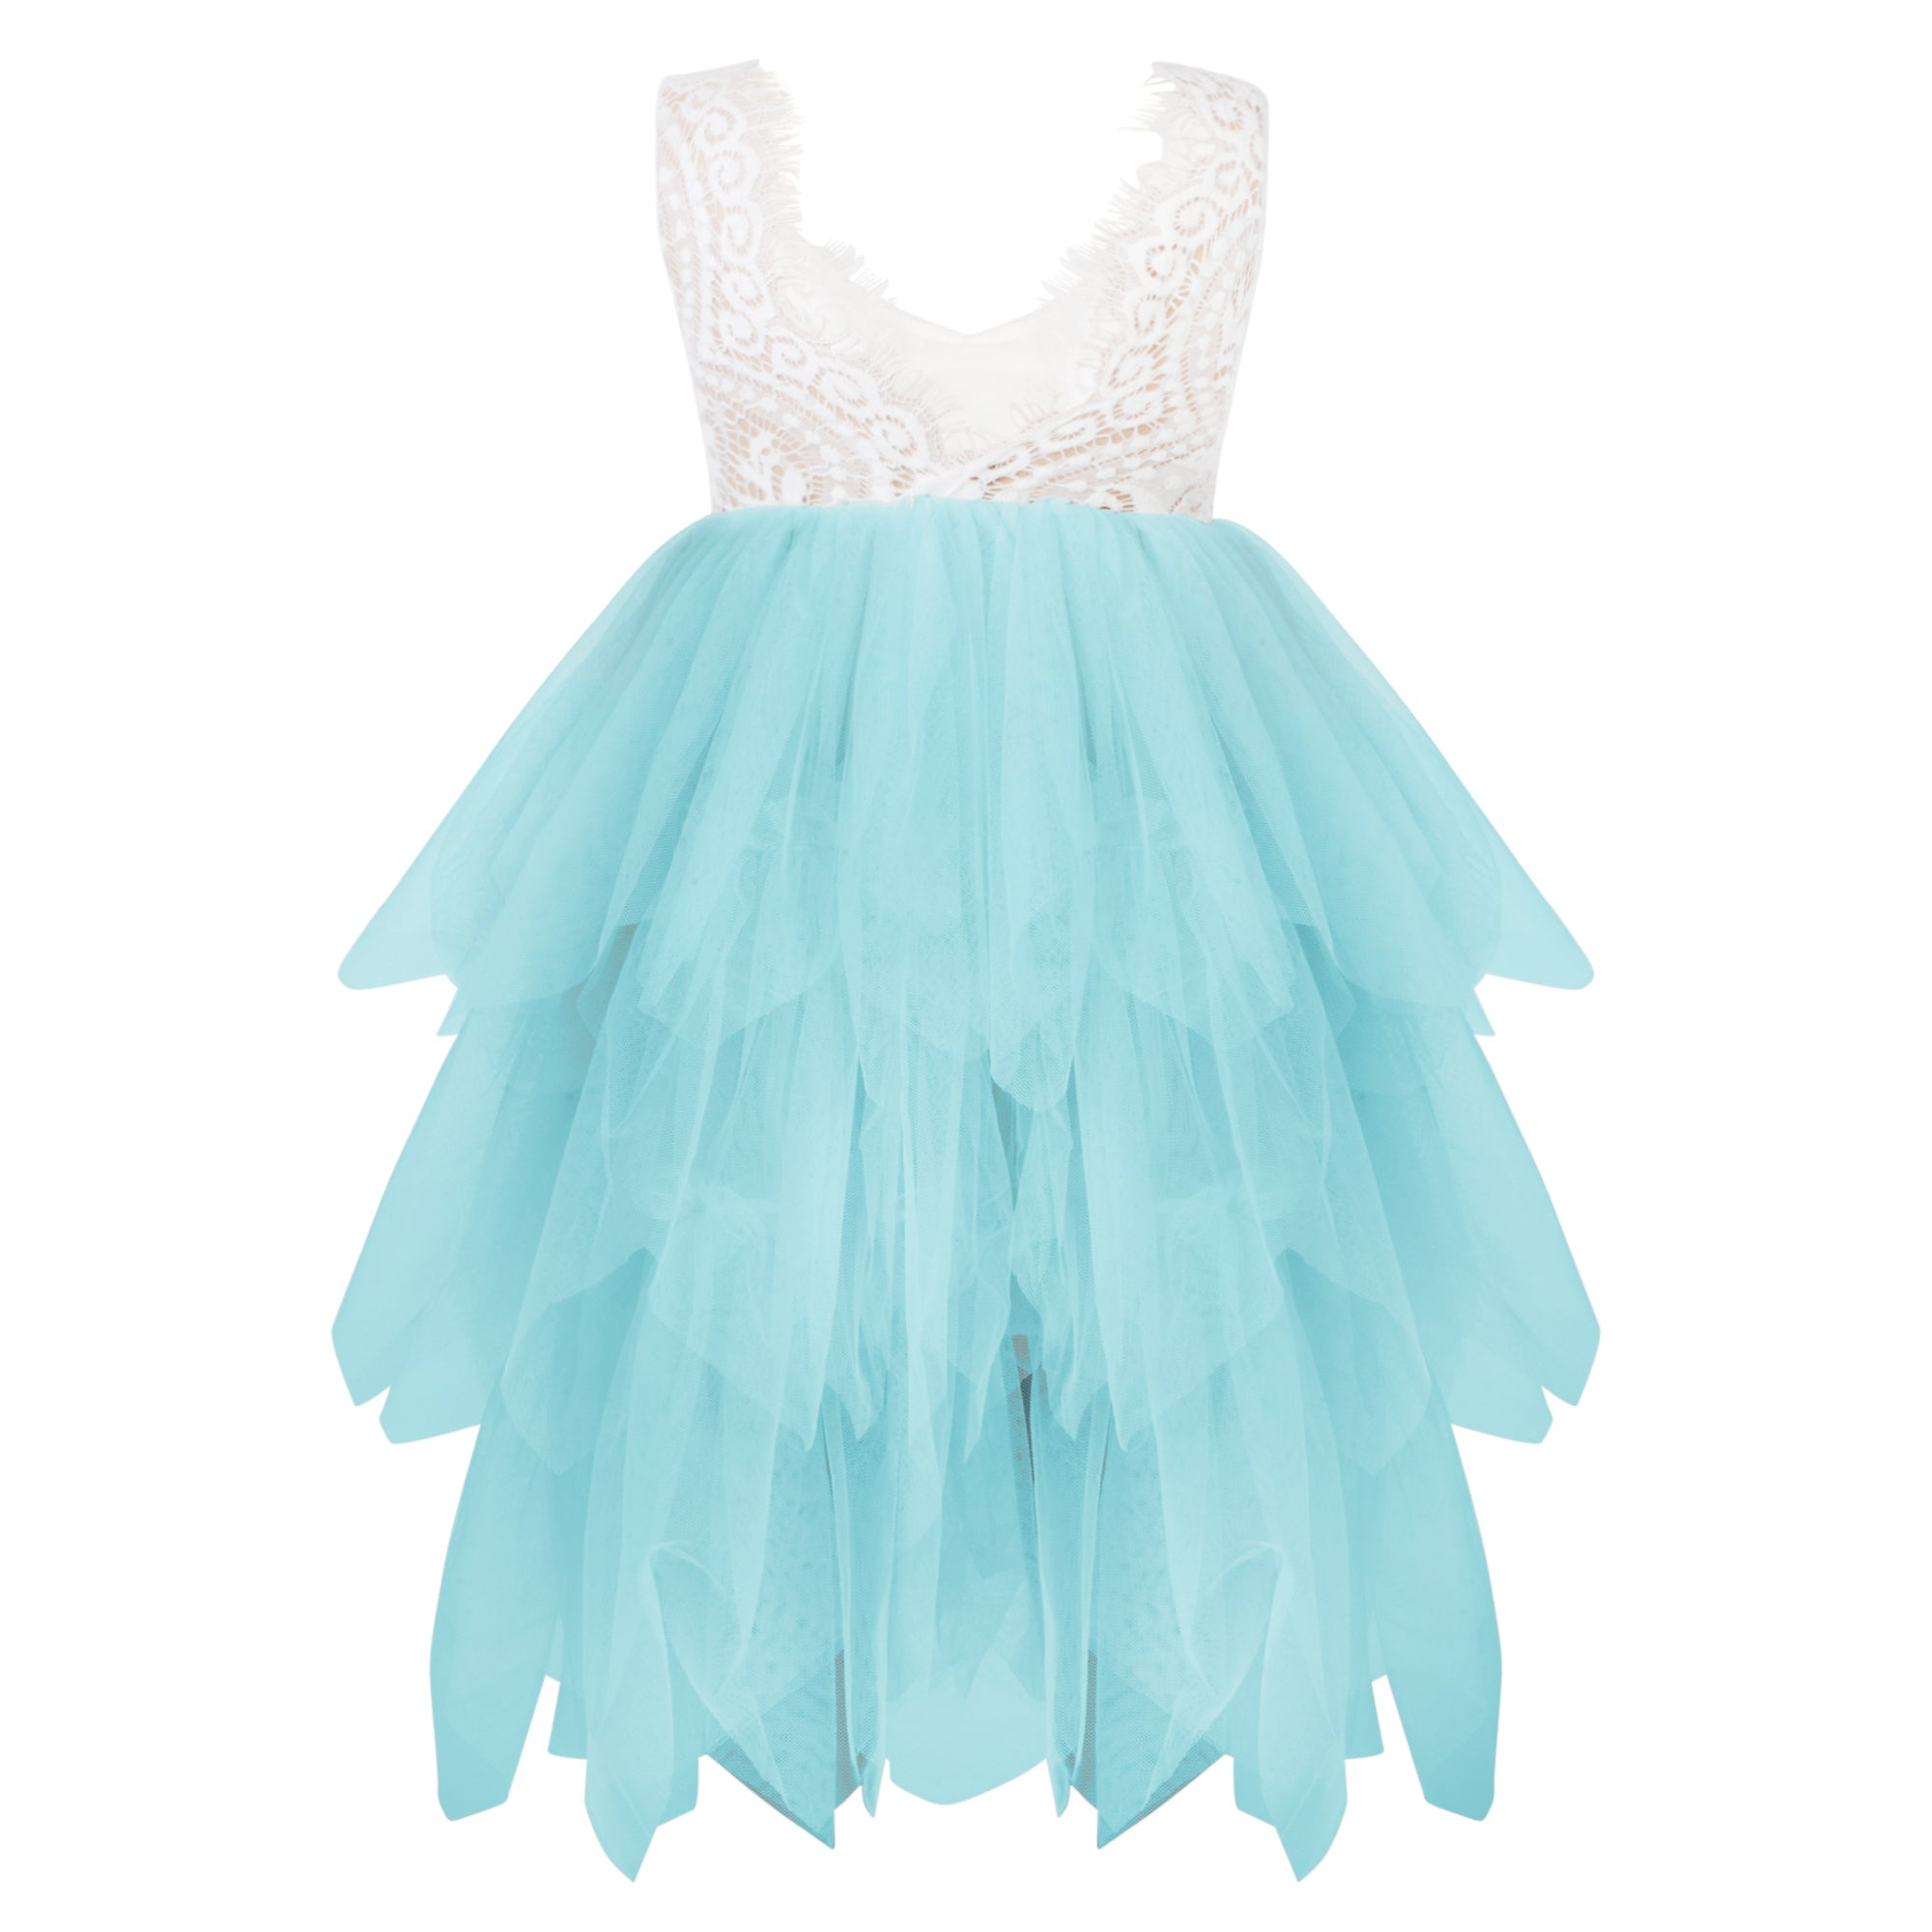 Boho Dreams Flower Girl Dress with mint coloured skirt